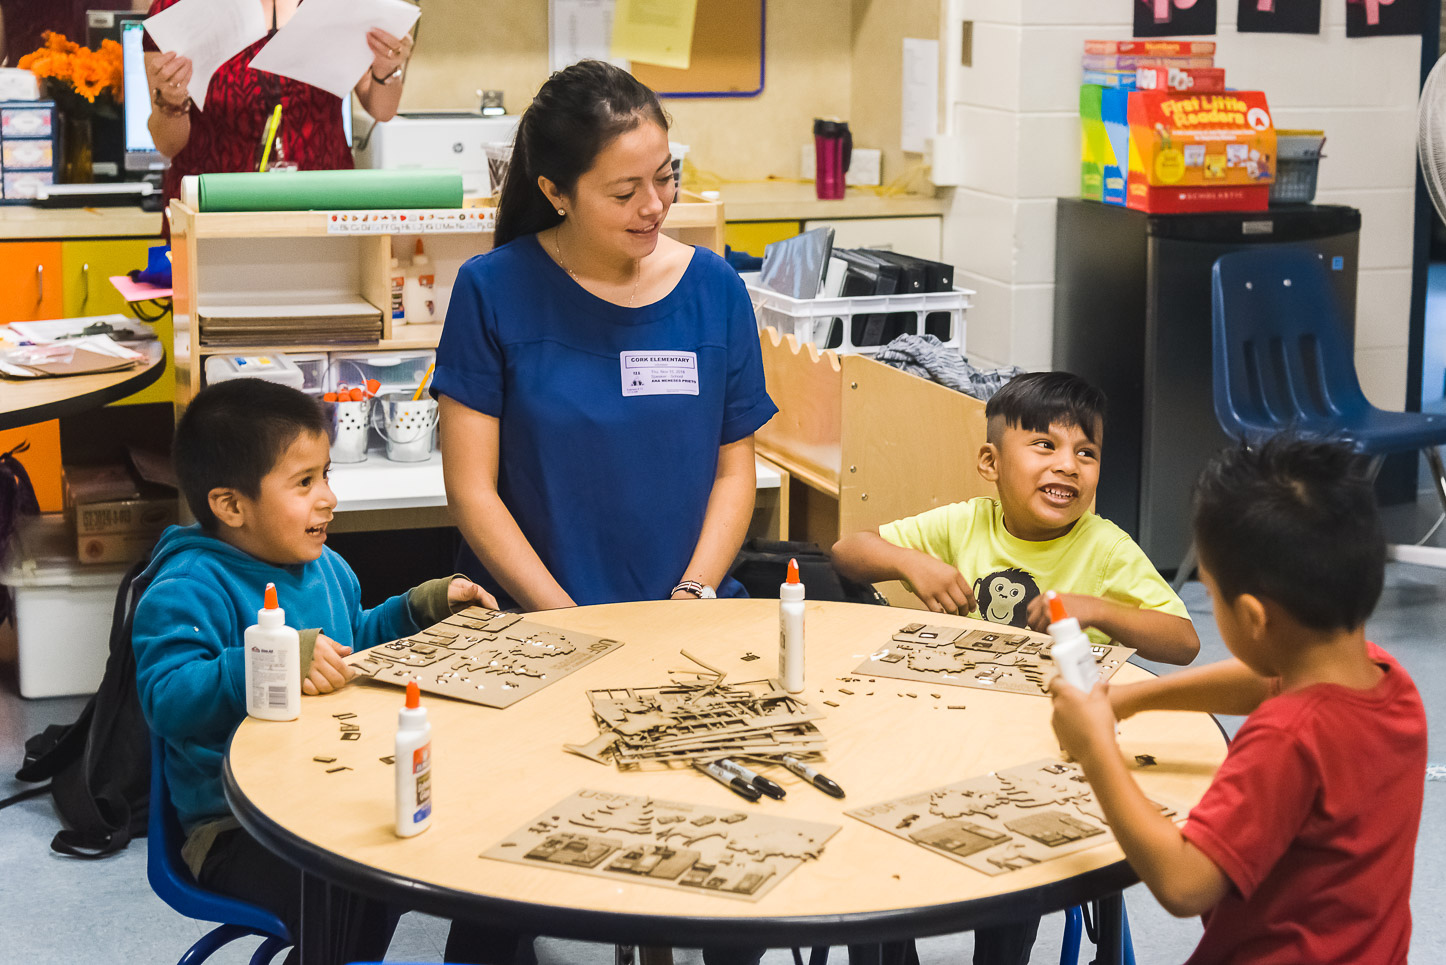 USF architecture student Ana Meneses sits at a table with three VPK students as they build model houses.